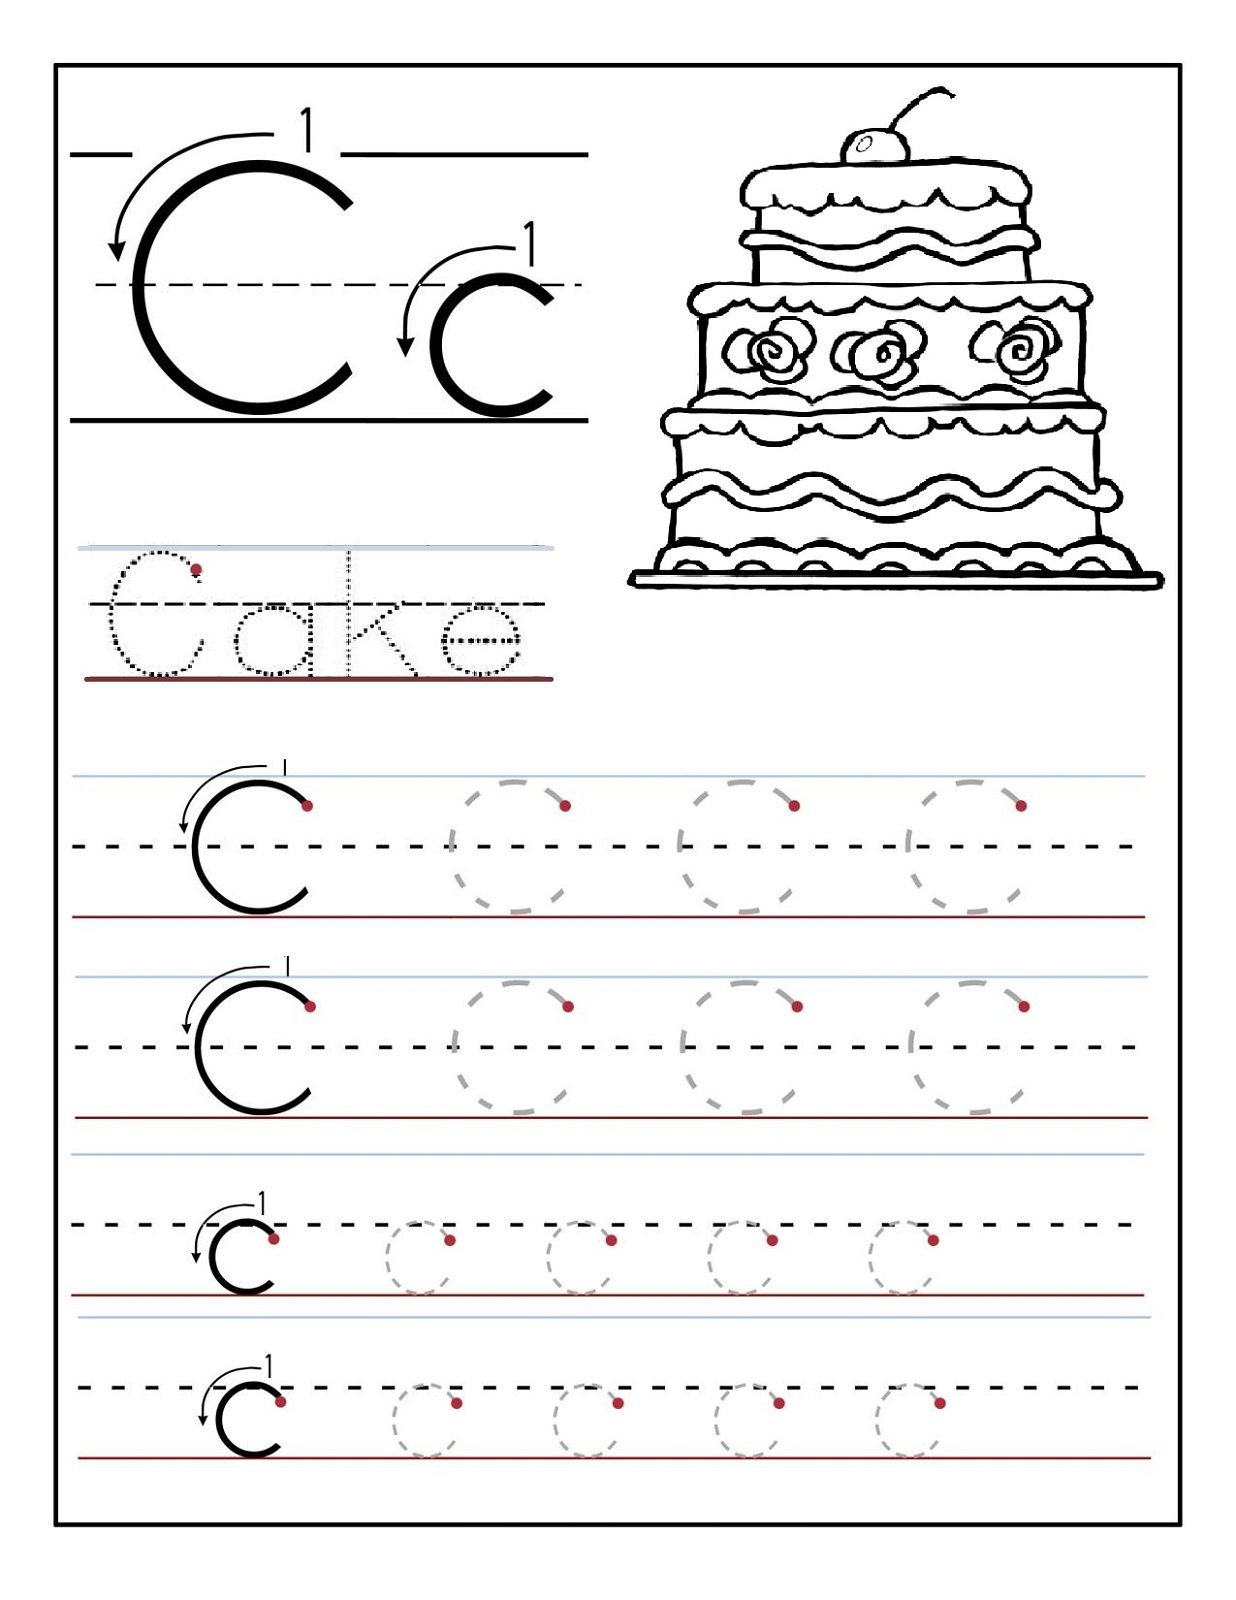 Trace The Letter C Worksheets | Letter Tracing Worksheets inside Letter C Worksheets Free Printable